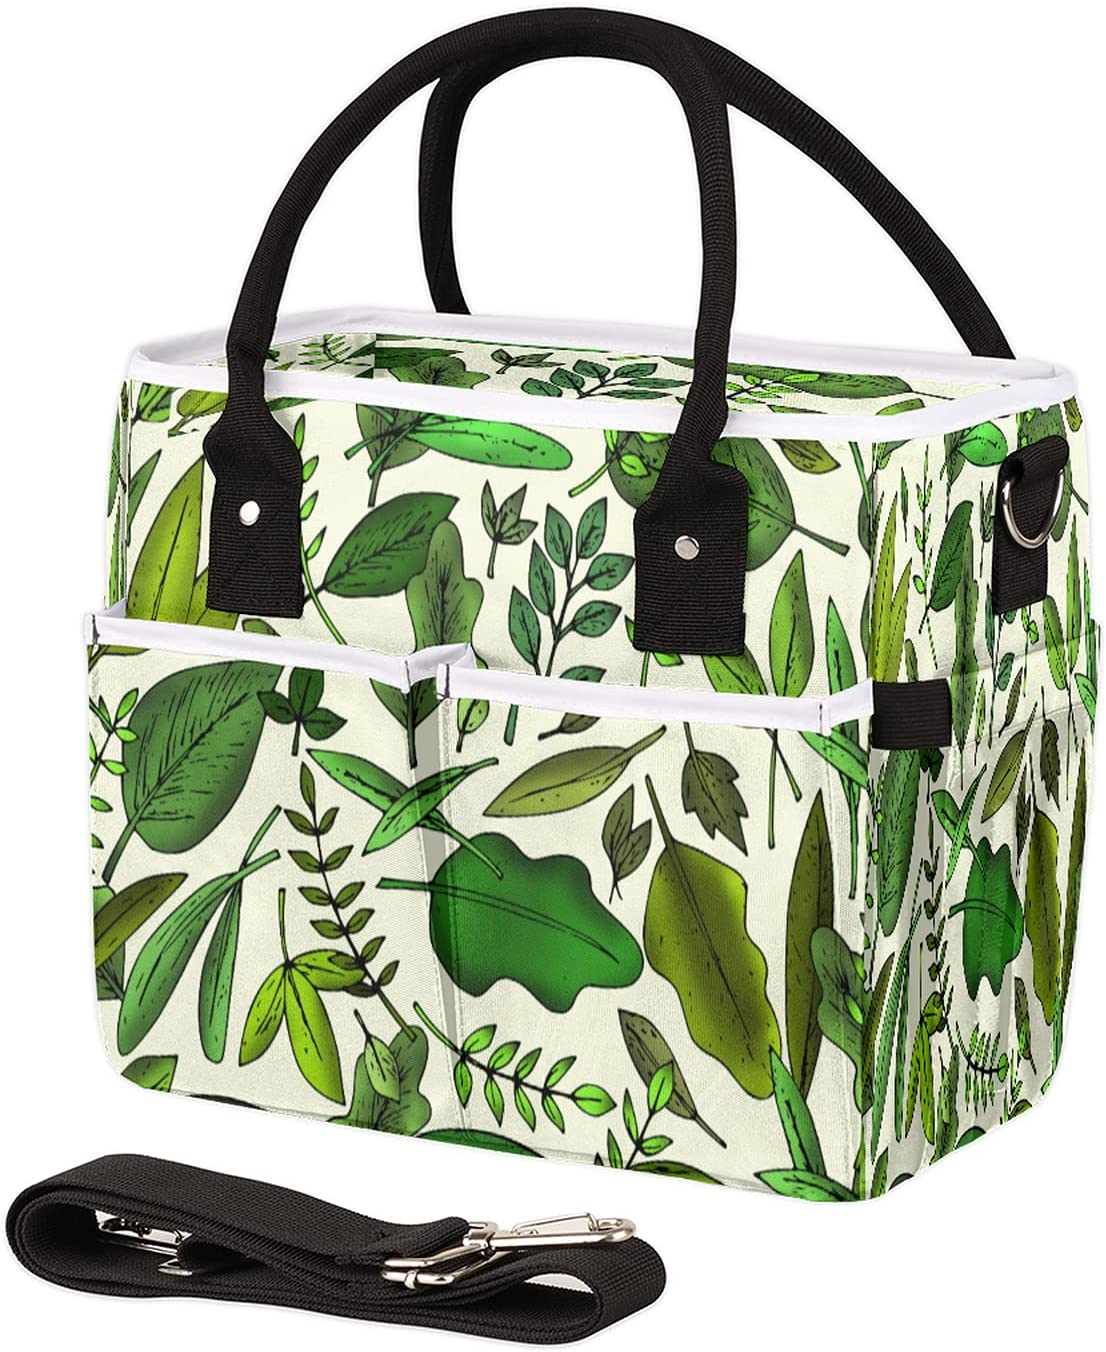 Award-winning store Insulated Lunch Bag for Women Leaves All stores are sold Tropical Leakproof Reus Men